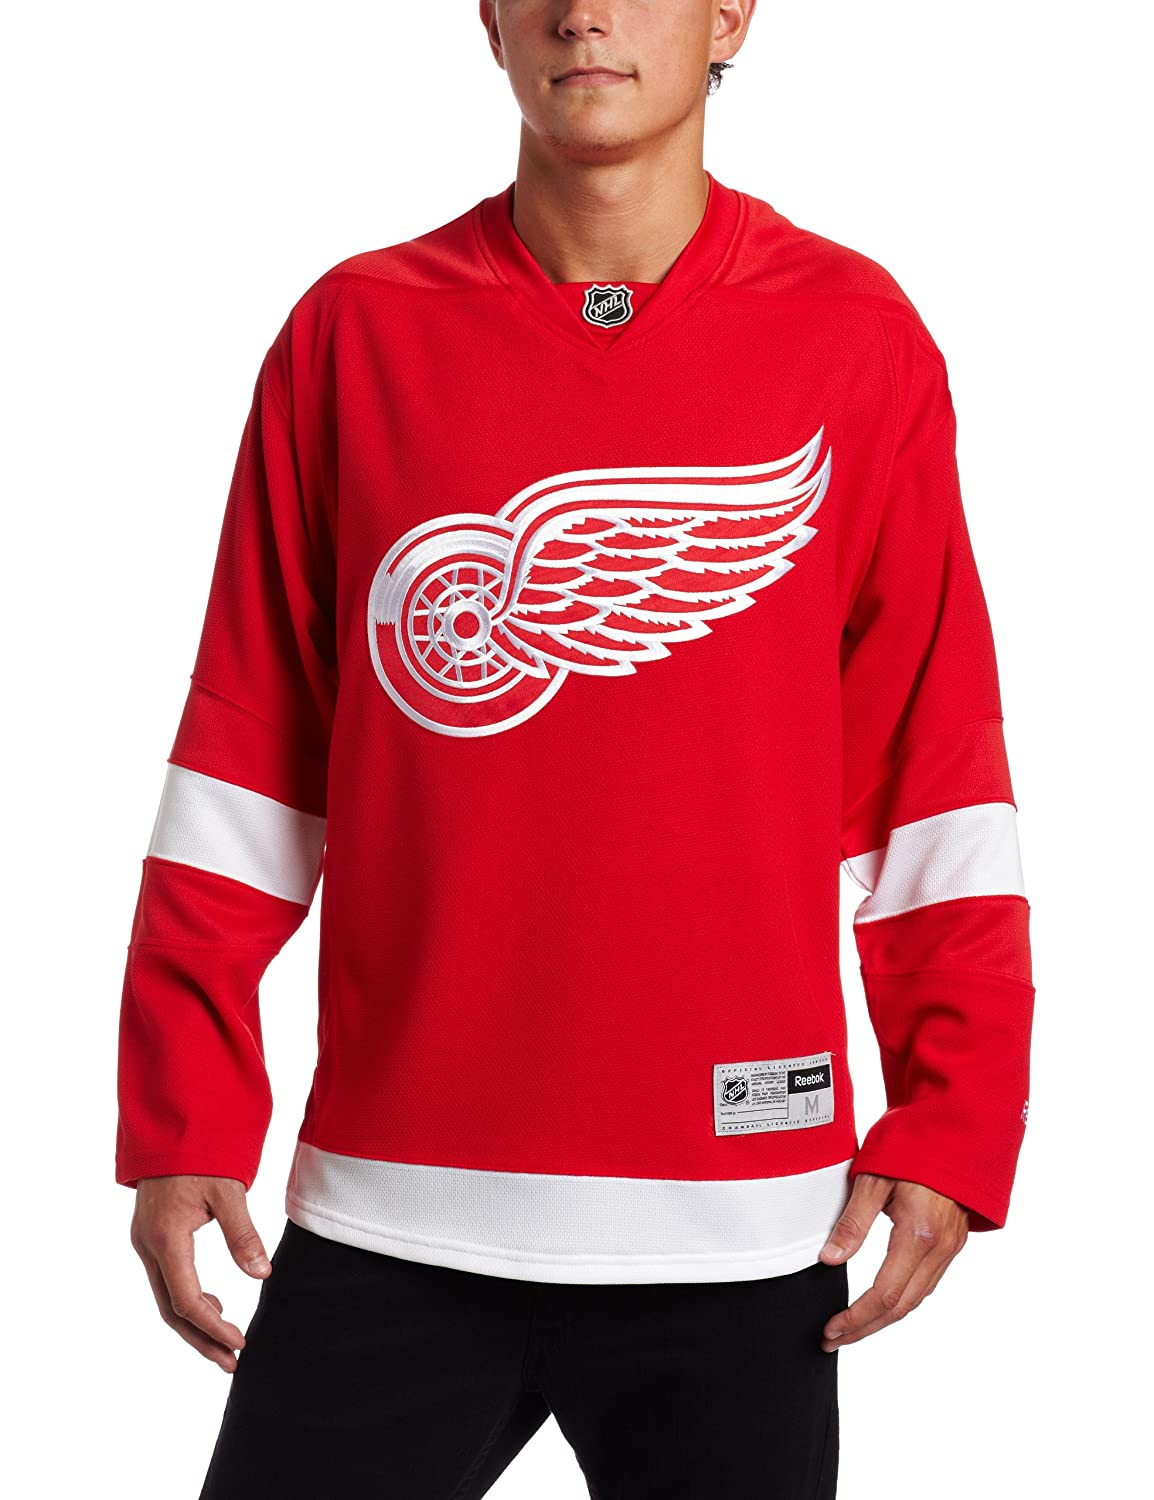 online retailer 777e4 9a236 NHL Detroit Red Wings Premier Jersey, Red